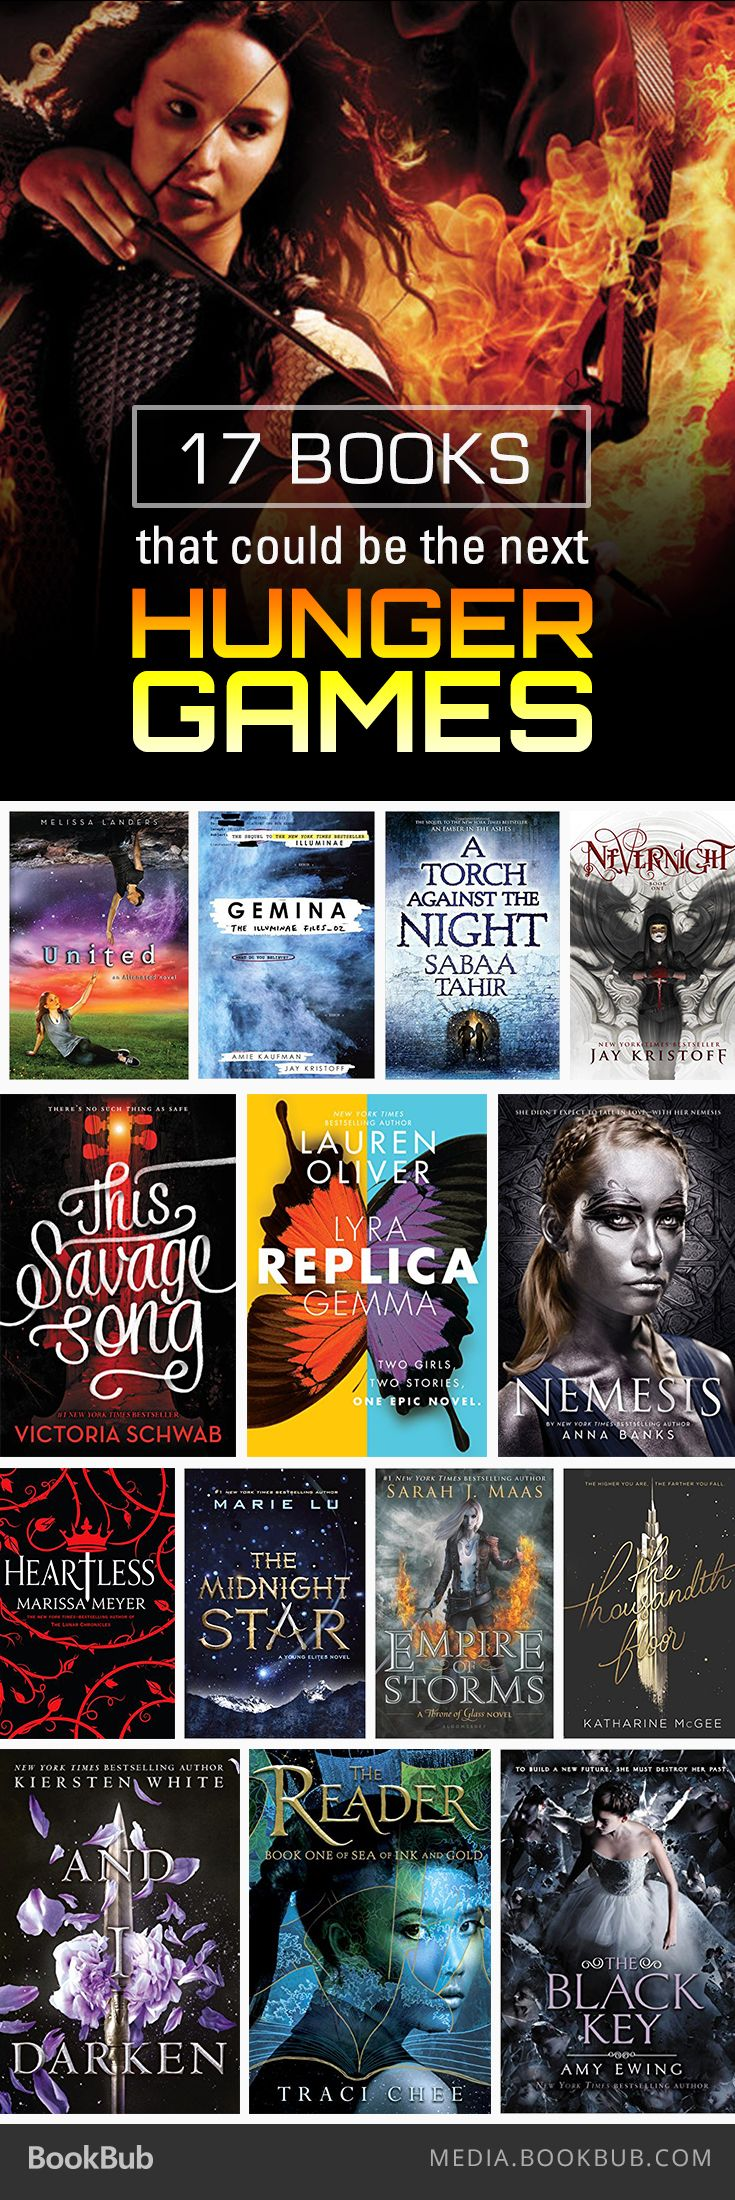 17 books to read if you love The Hunger Games, including reads from Marissa Meyer and Sarah J. Maas.